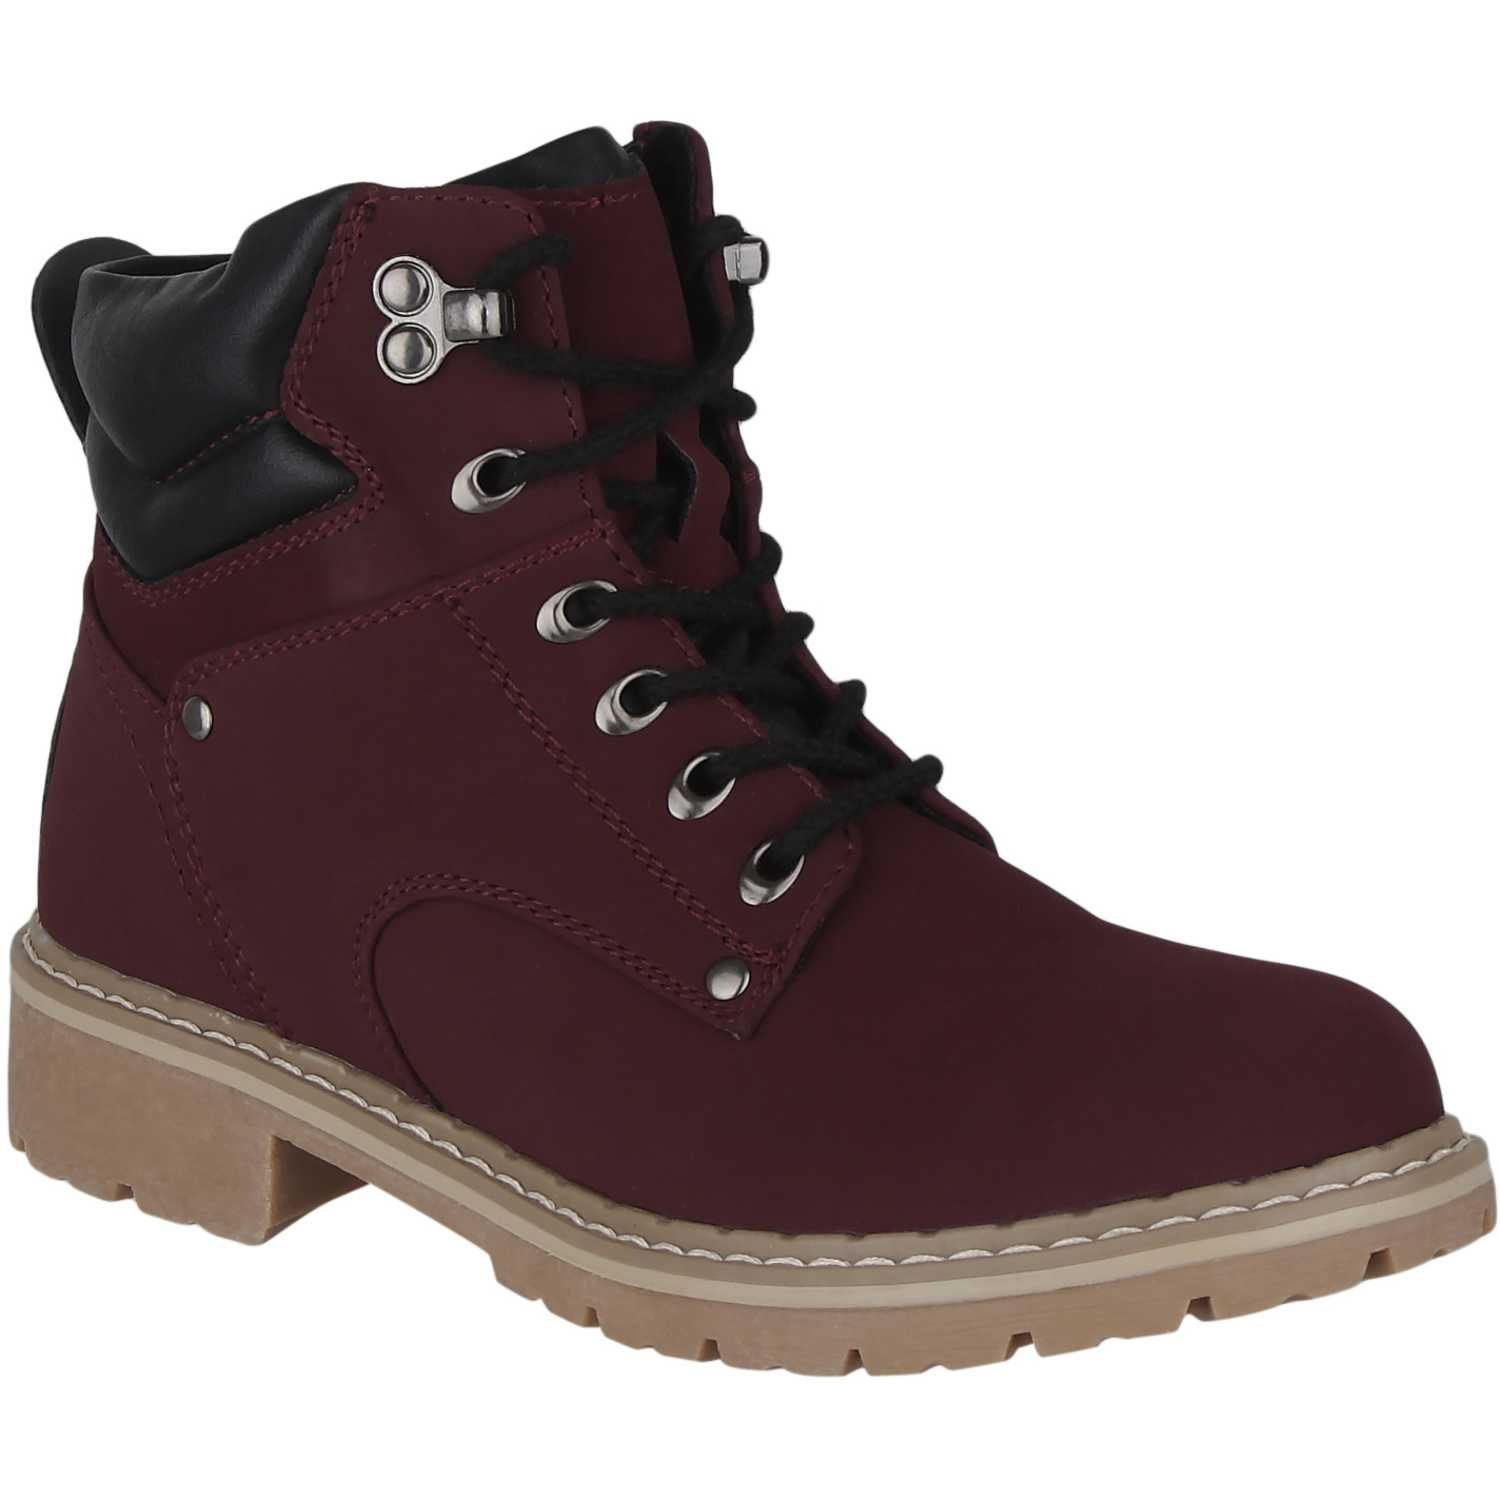 Platanitos Bf 5botin De Mujer Boots Hiking Boots Chelsea Boots